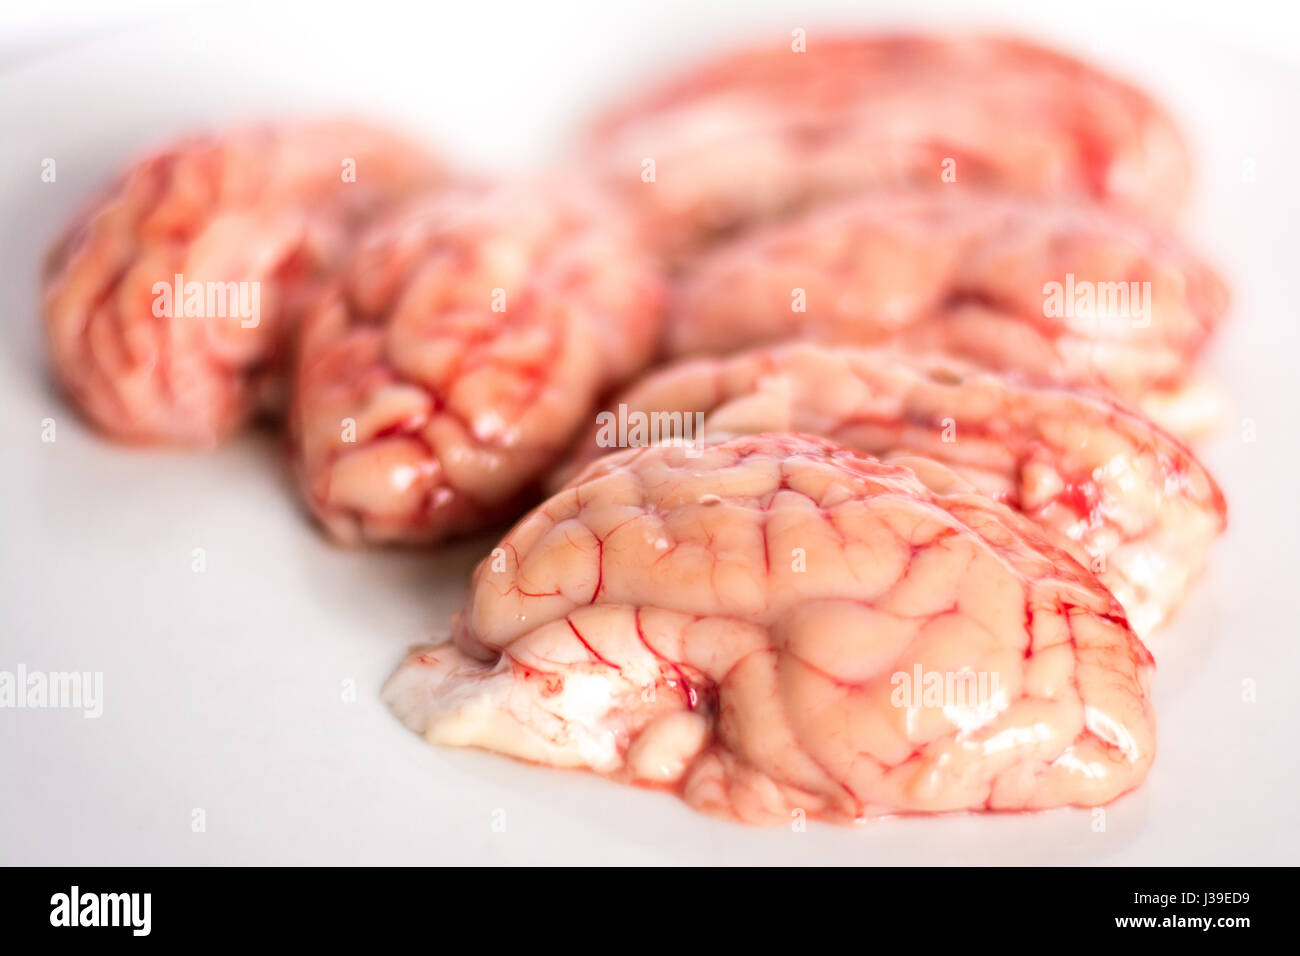 closeup of a brains on white background - Stock Image